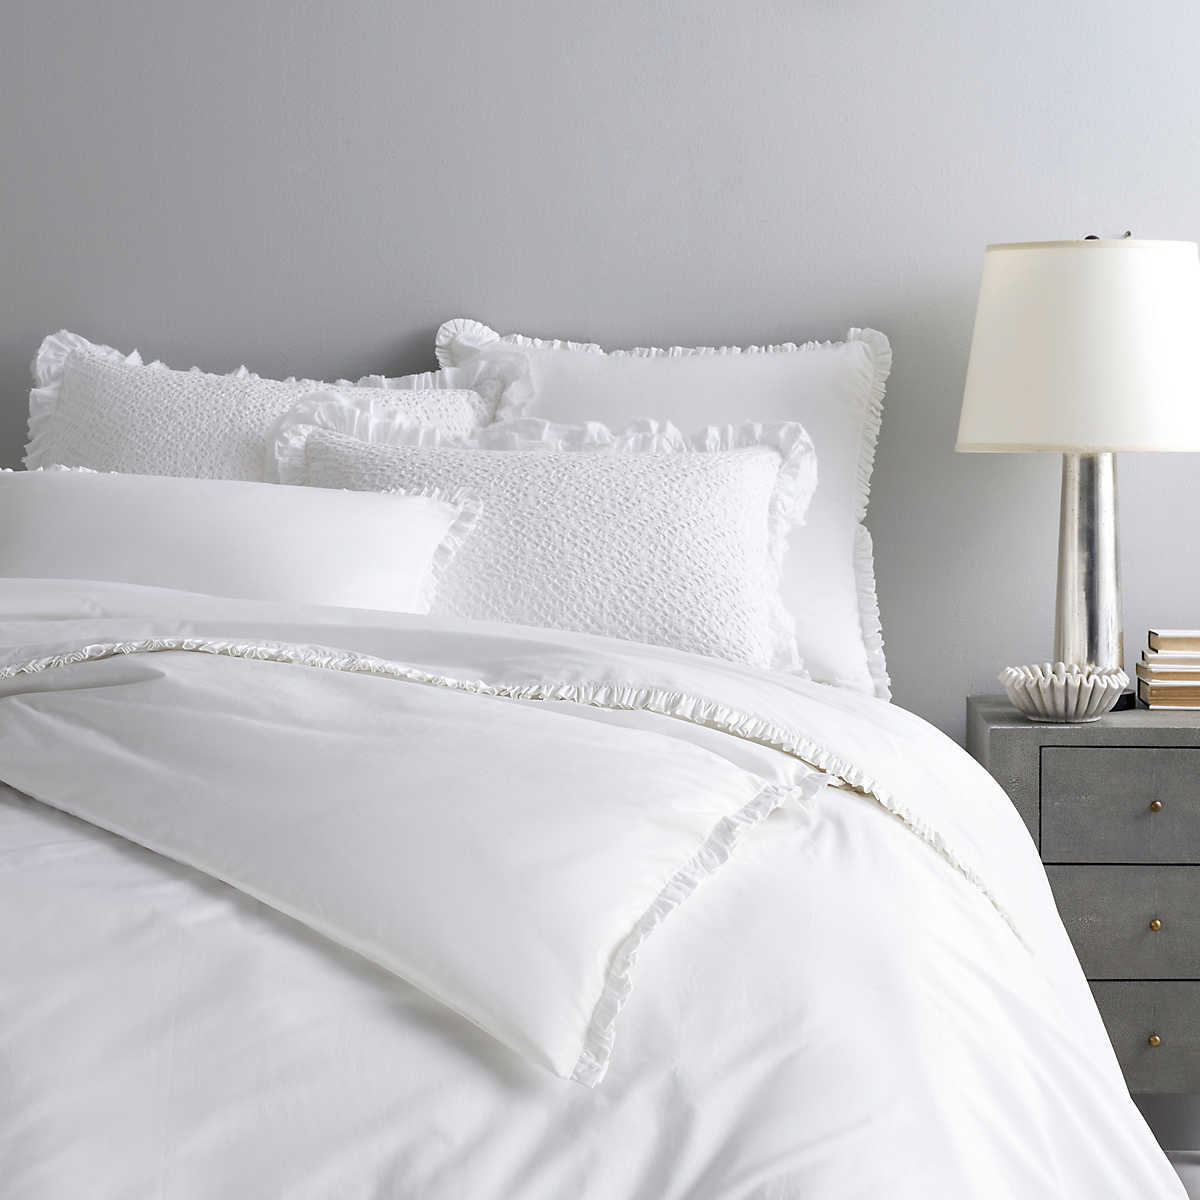 new duvet dormify dorm duvetcover collections white twin comforters xl covers hamptonstripe